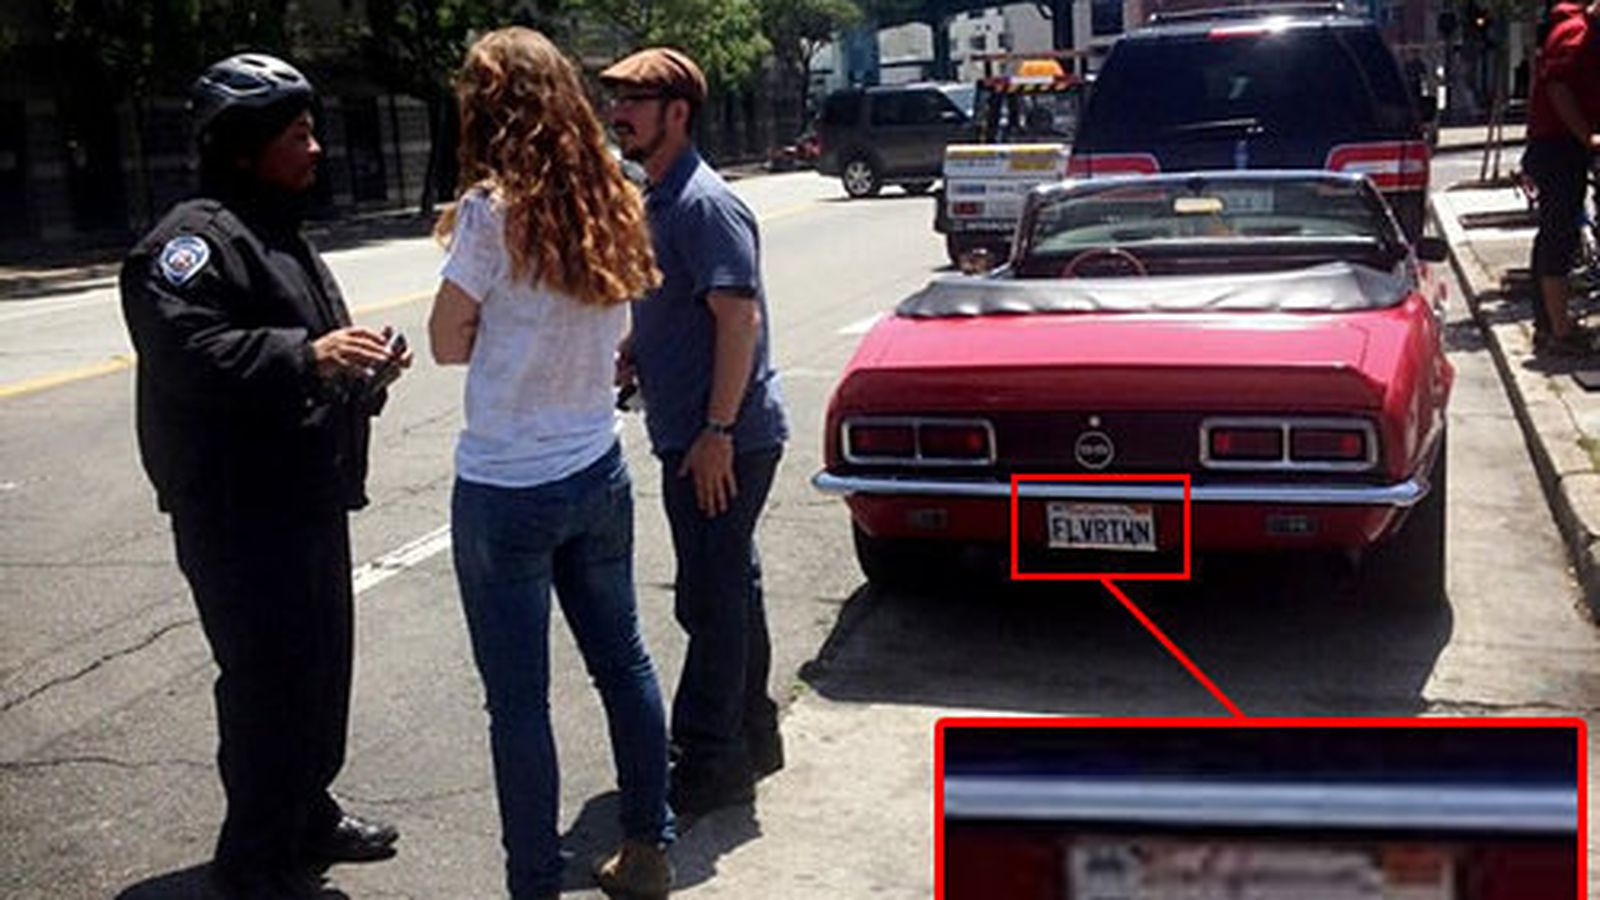 Car Share Denver >> Guy Fieri's Camaro Gets a Parking Ticket Shooting in SF